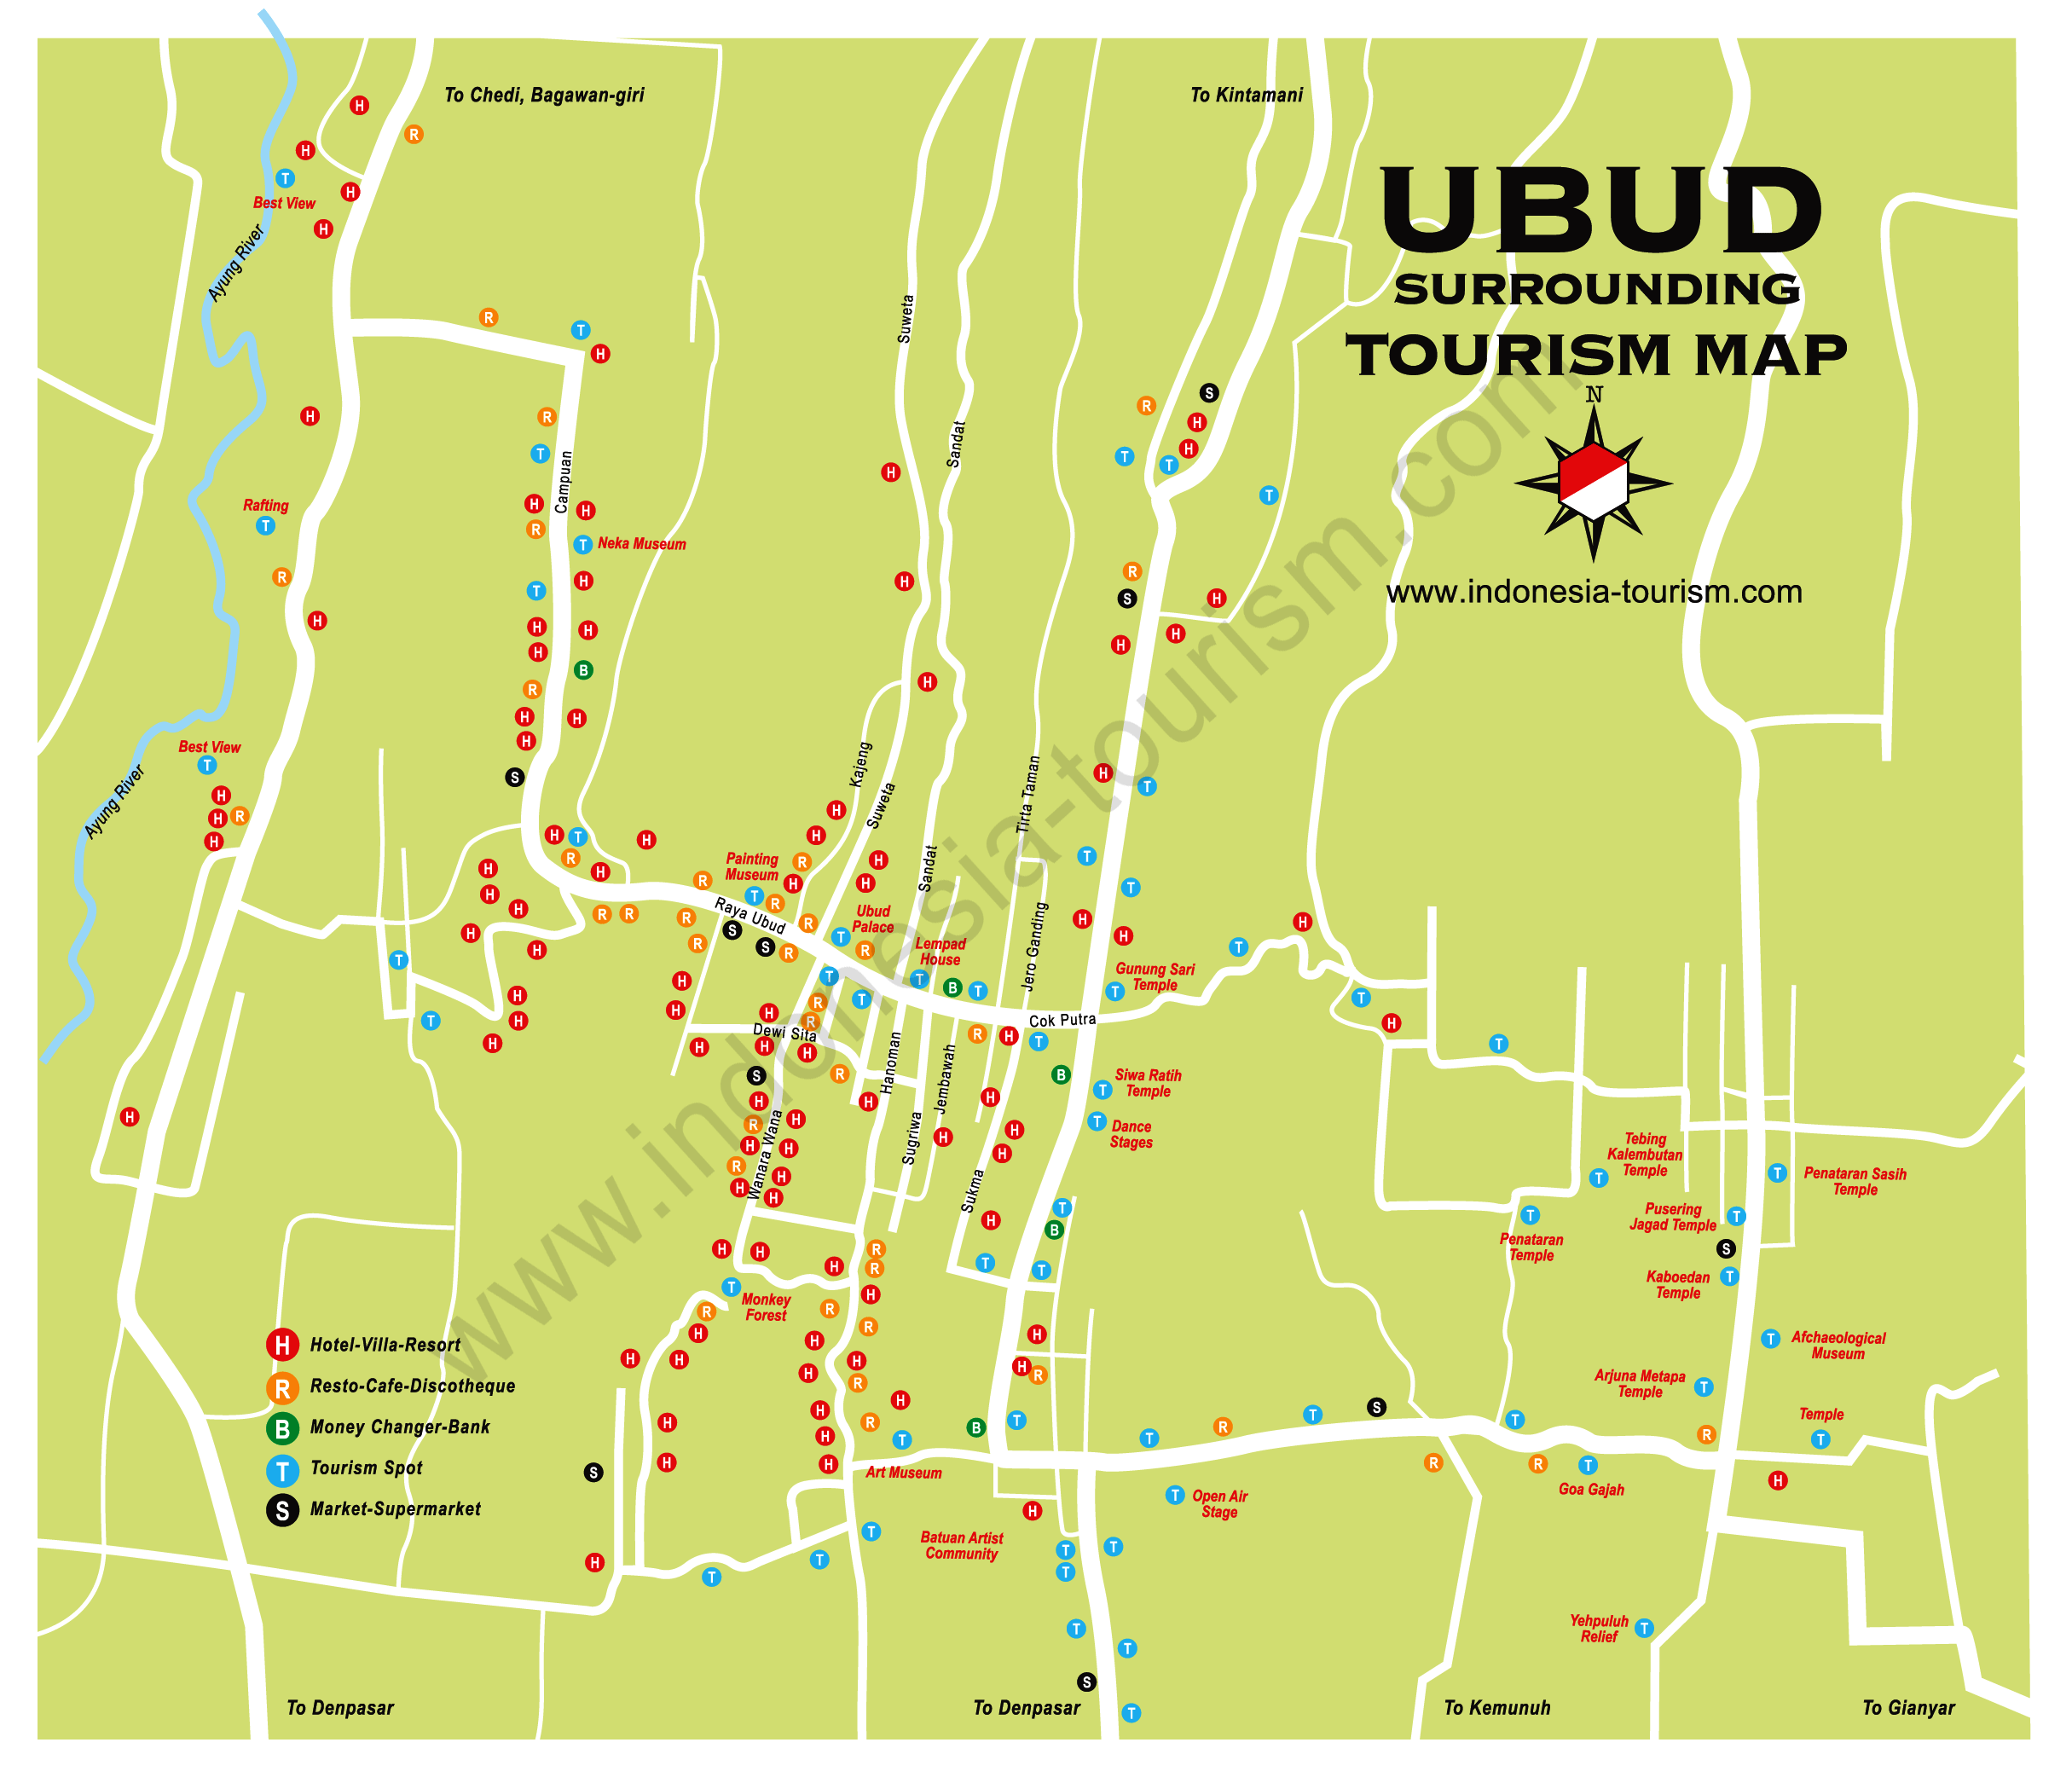 Ubud Bali Weather 6 Day Forecast for Travelers Guide,things to do in ubud,ubud villas hotels monkey forest map photos,uma ubud bali,ubud weather forecast report,weather report ubud,ubud bali weather january february march april may june july august september october november december,Map of the Ubud area,Ubud Tourism hotels map